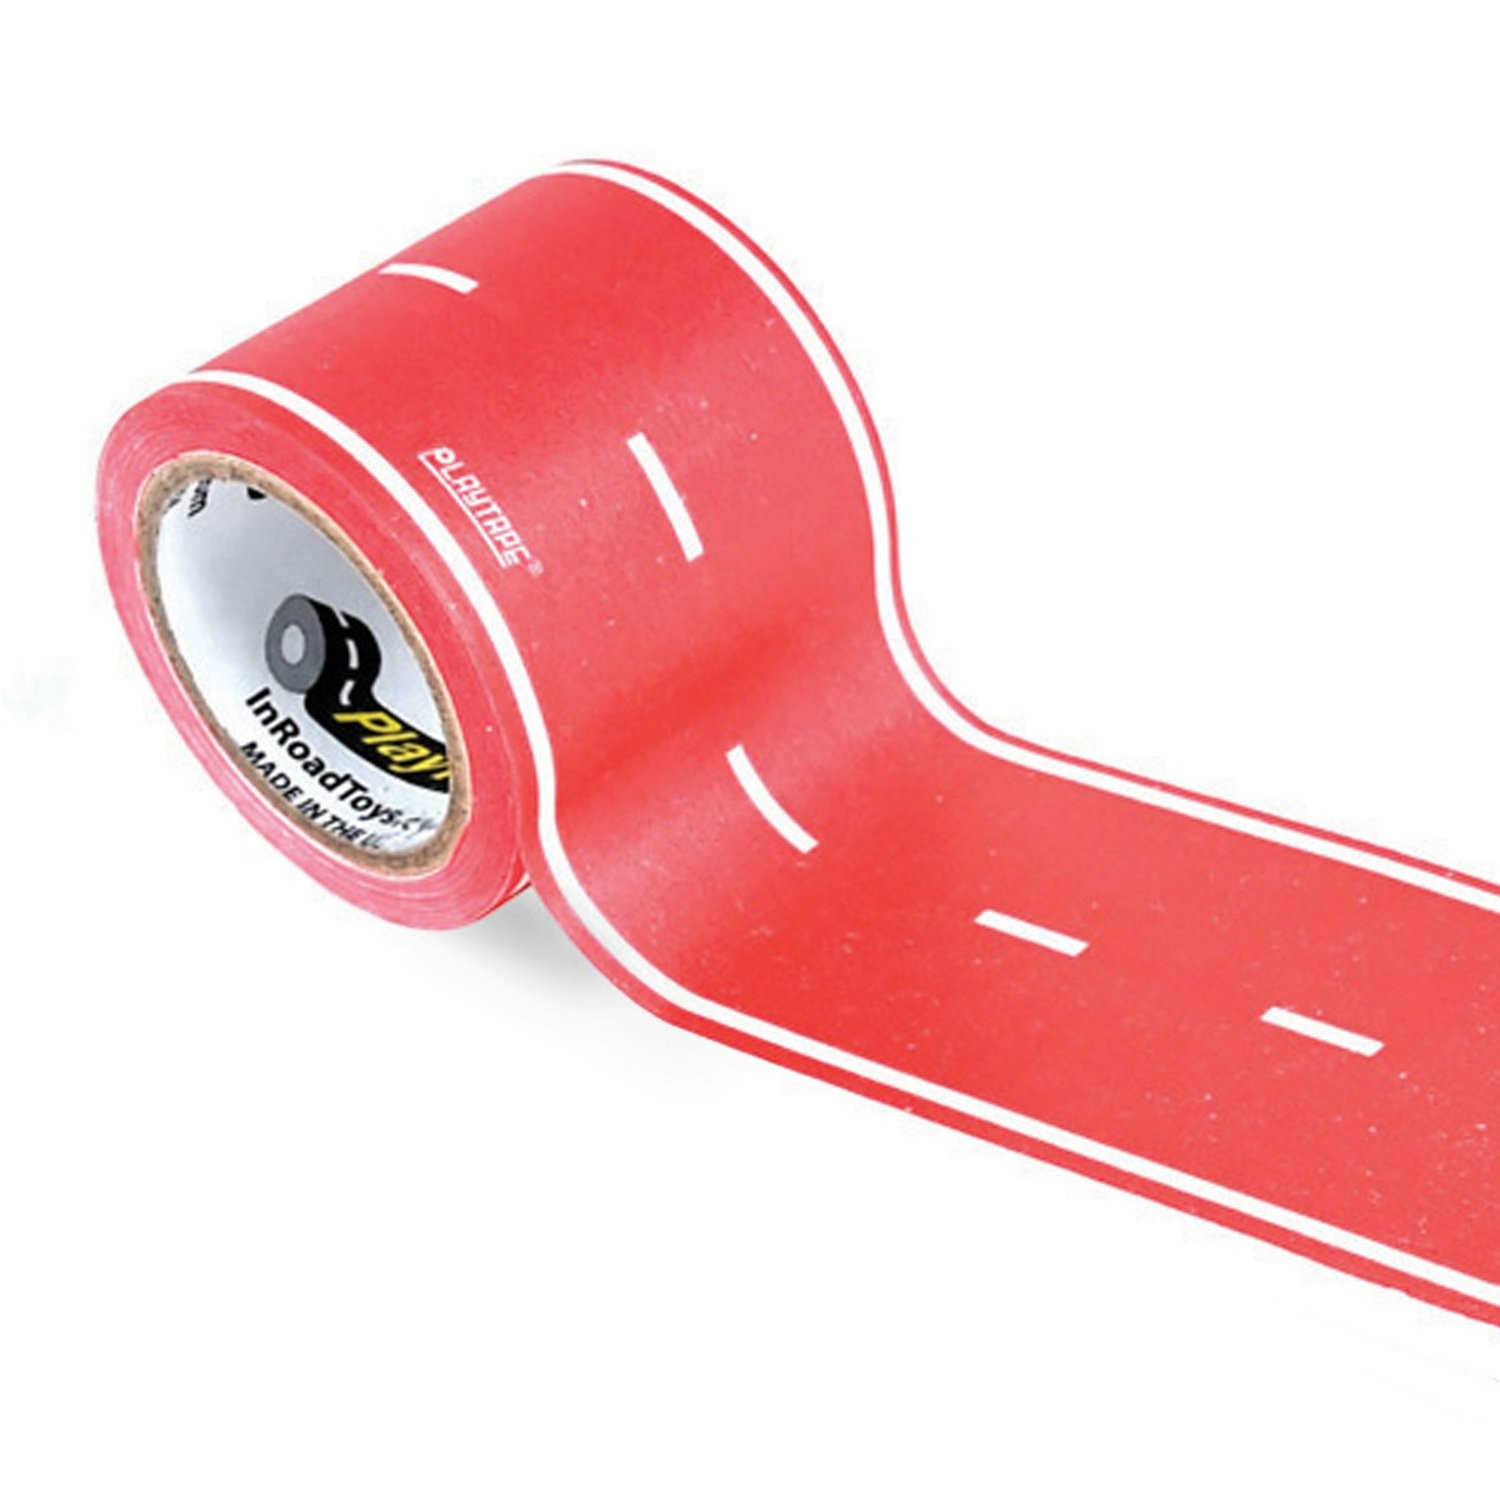 "PlayTape Red Road 30'x4"" - Road Car Tape Great for Kids, Sticker Roll for Cars and Train Sets, Stick to Floors and Walls, Quick Cleanup, Children Toys Birthday Gift (30x2, Red)"